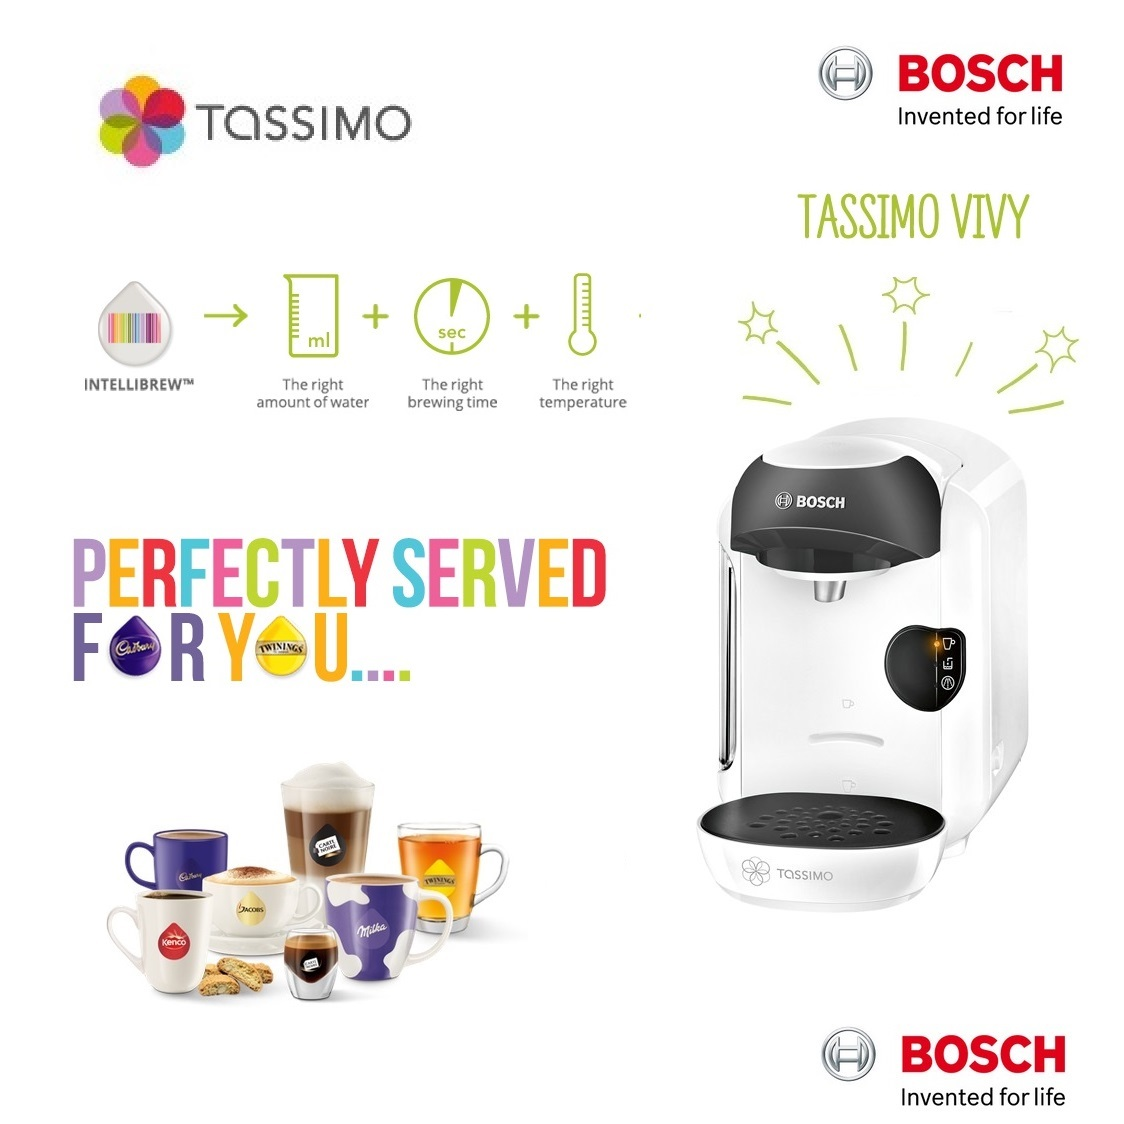 how to clean tassimo vivy